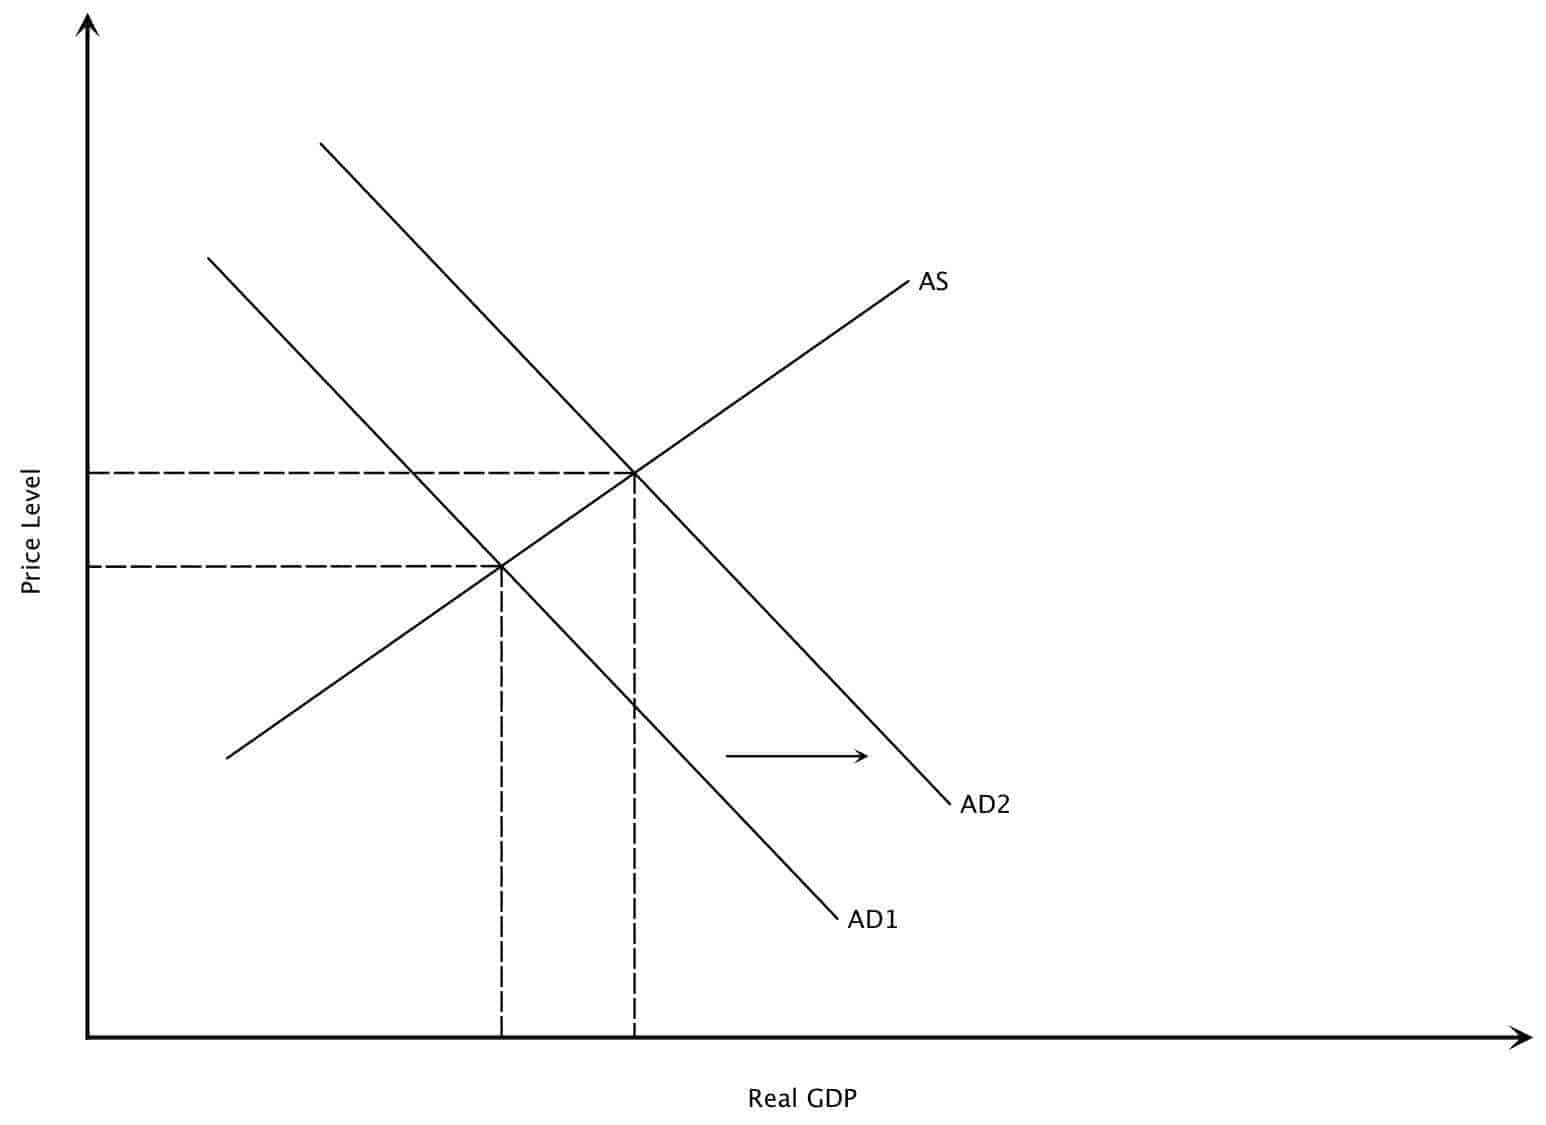 The Demand-Pull Inflation (Explained With Diagram)